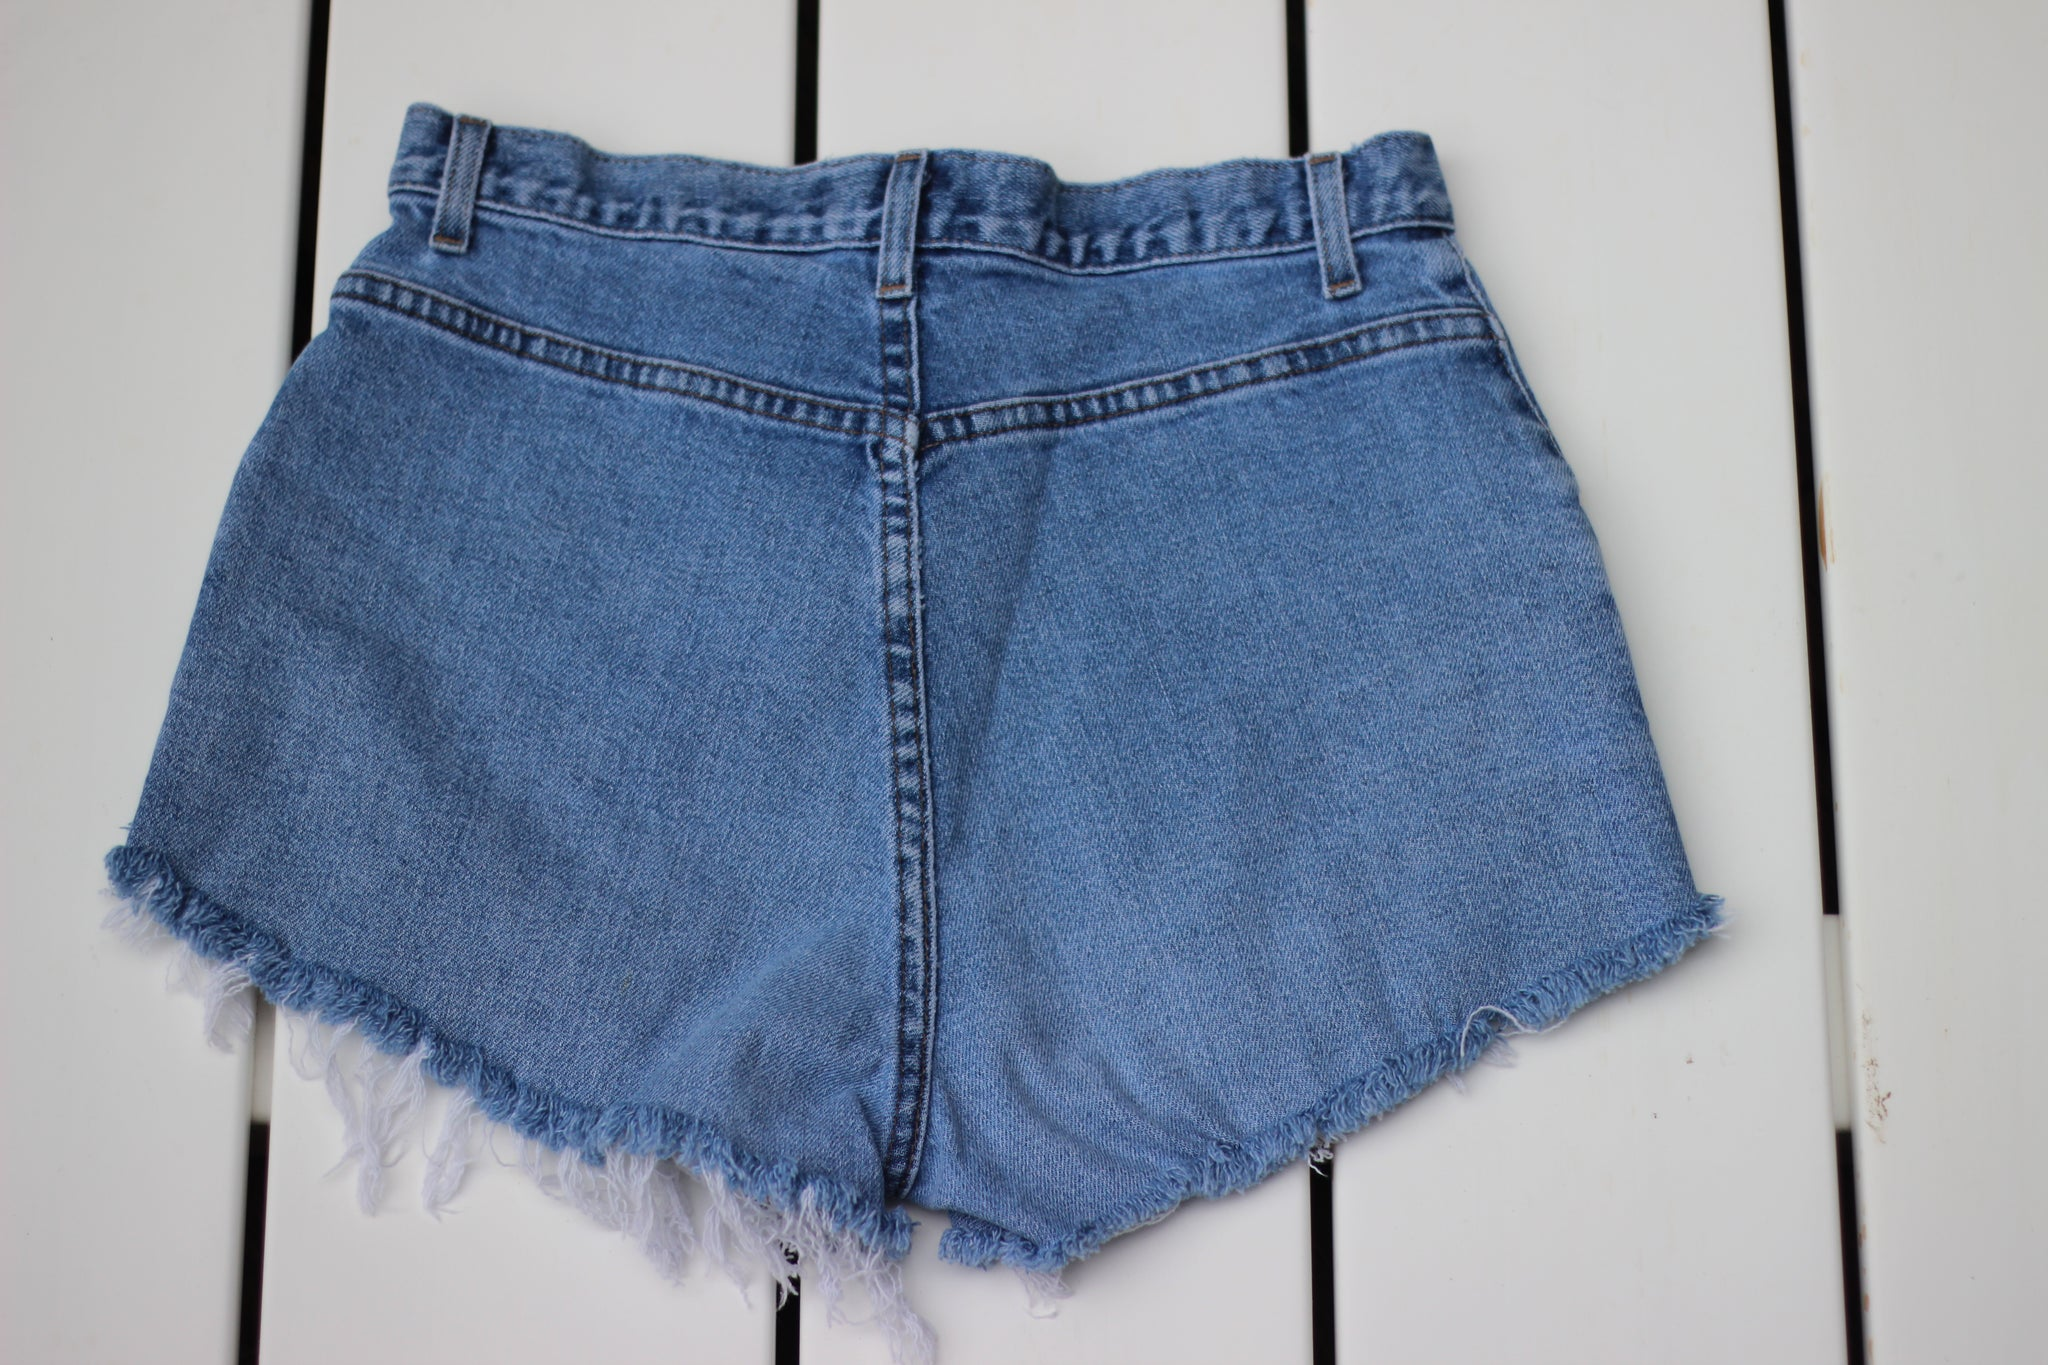 Vintage Cutoff Denim Jean Shorts (S/M)